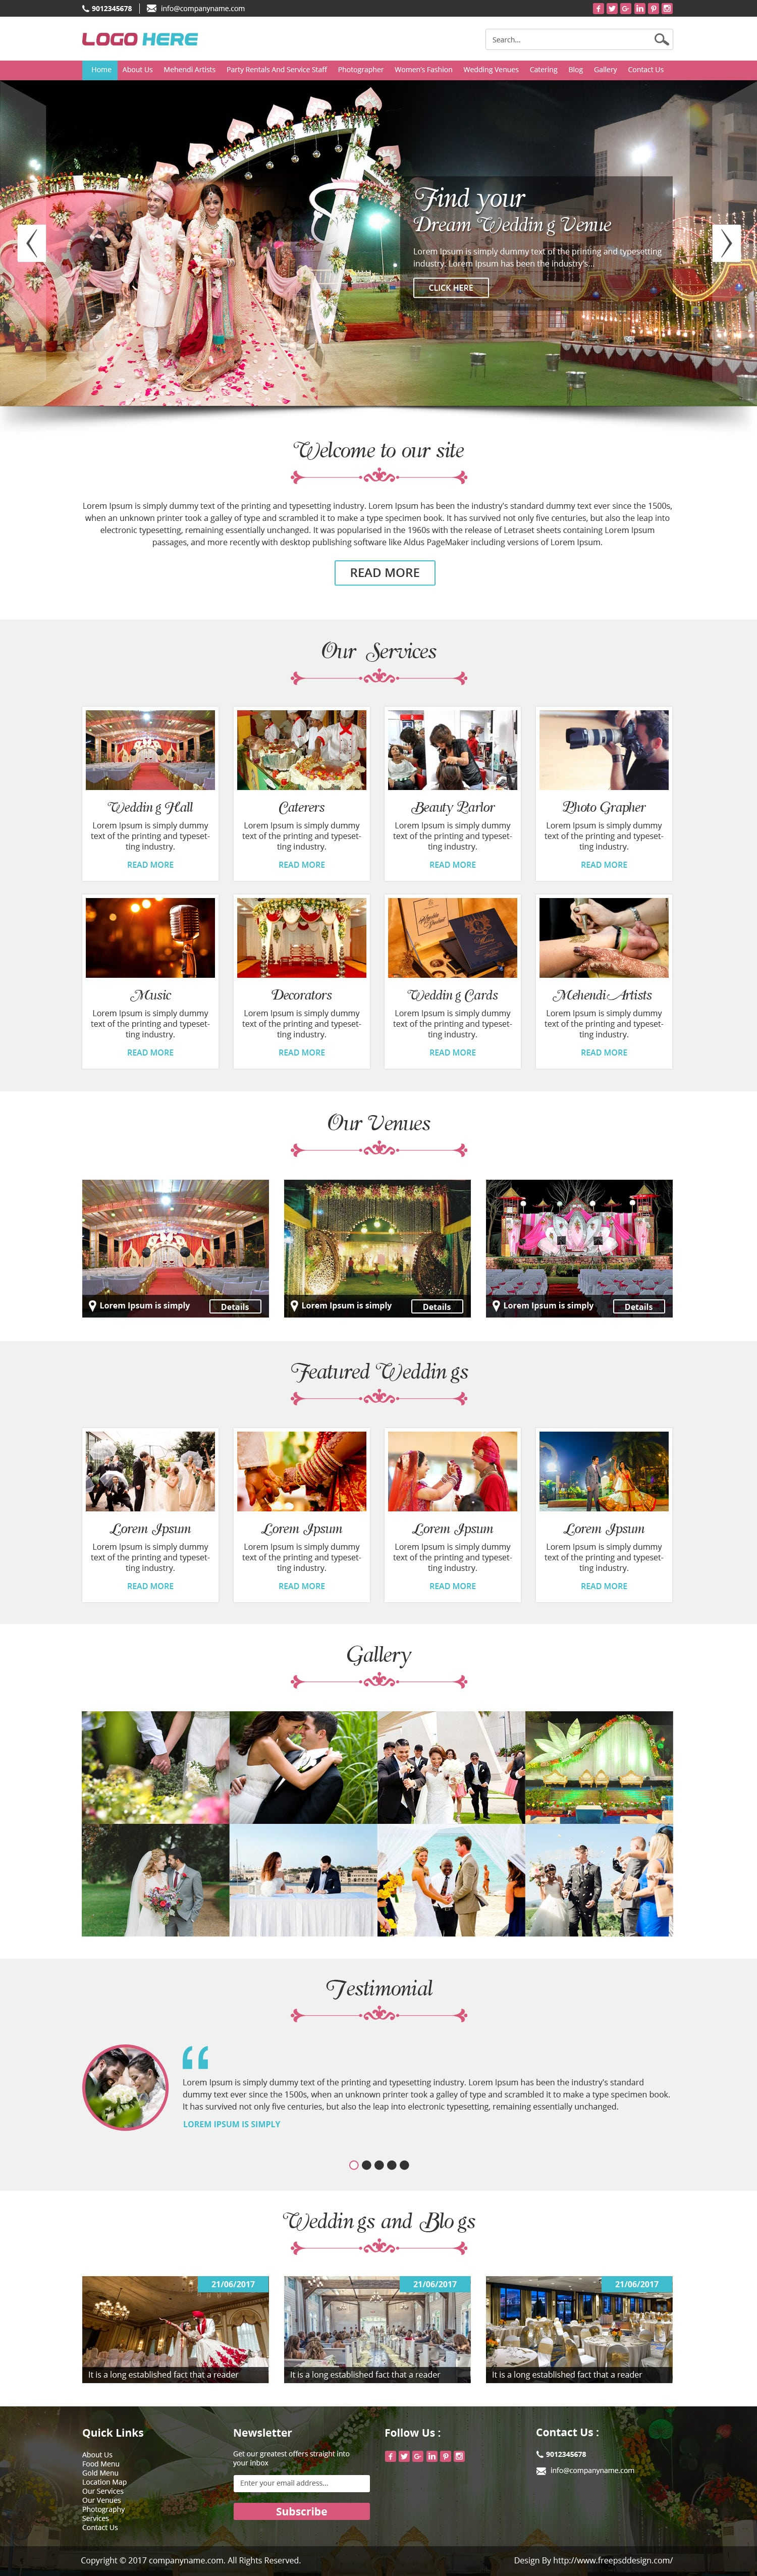 Wedding planner and Event Organizer Design PSD Template